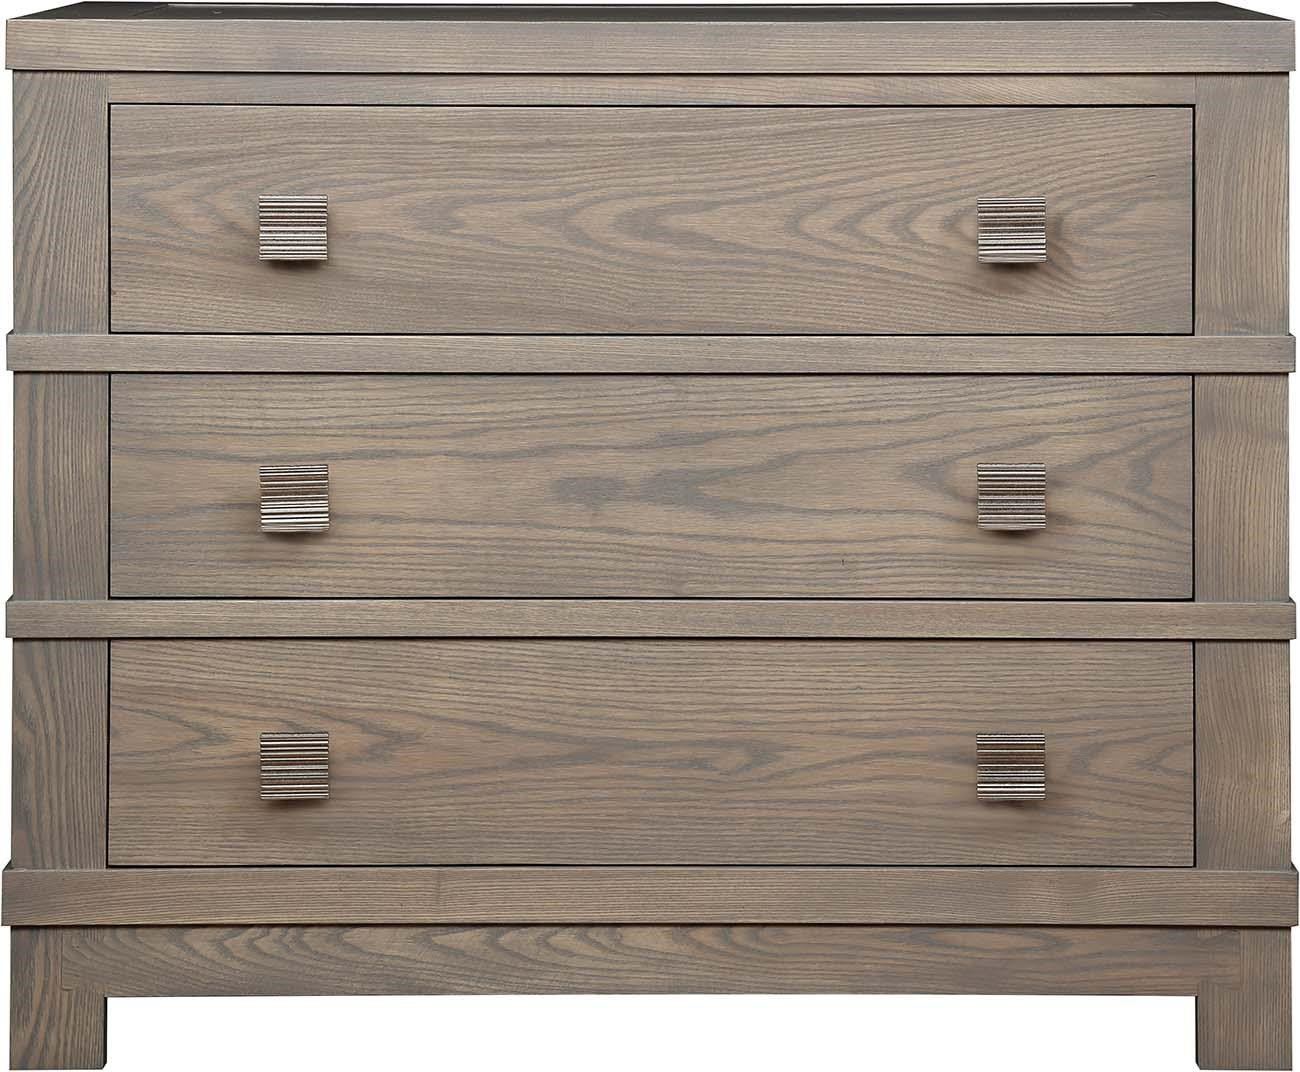 Grand Lodge Nightstand by Stickley at Sprintz Furniture